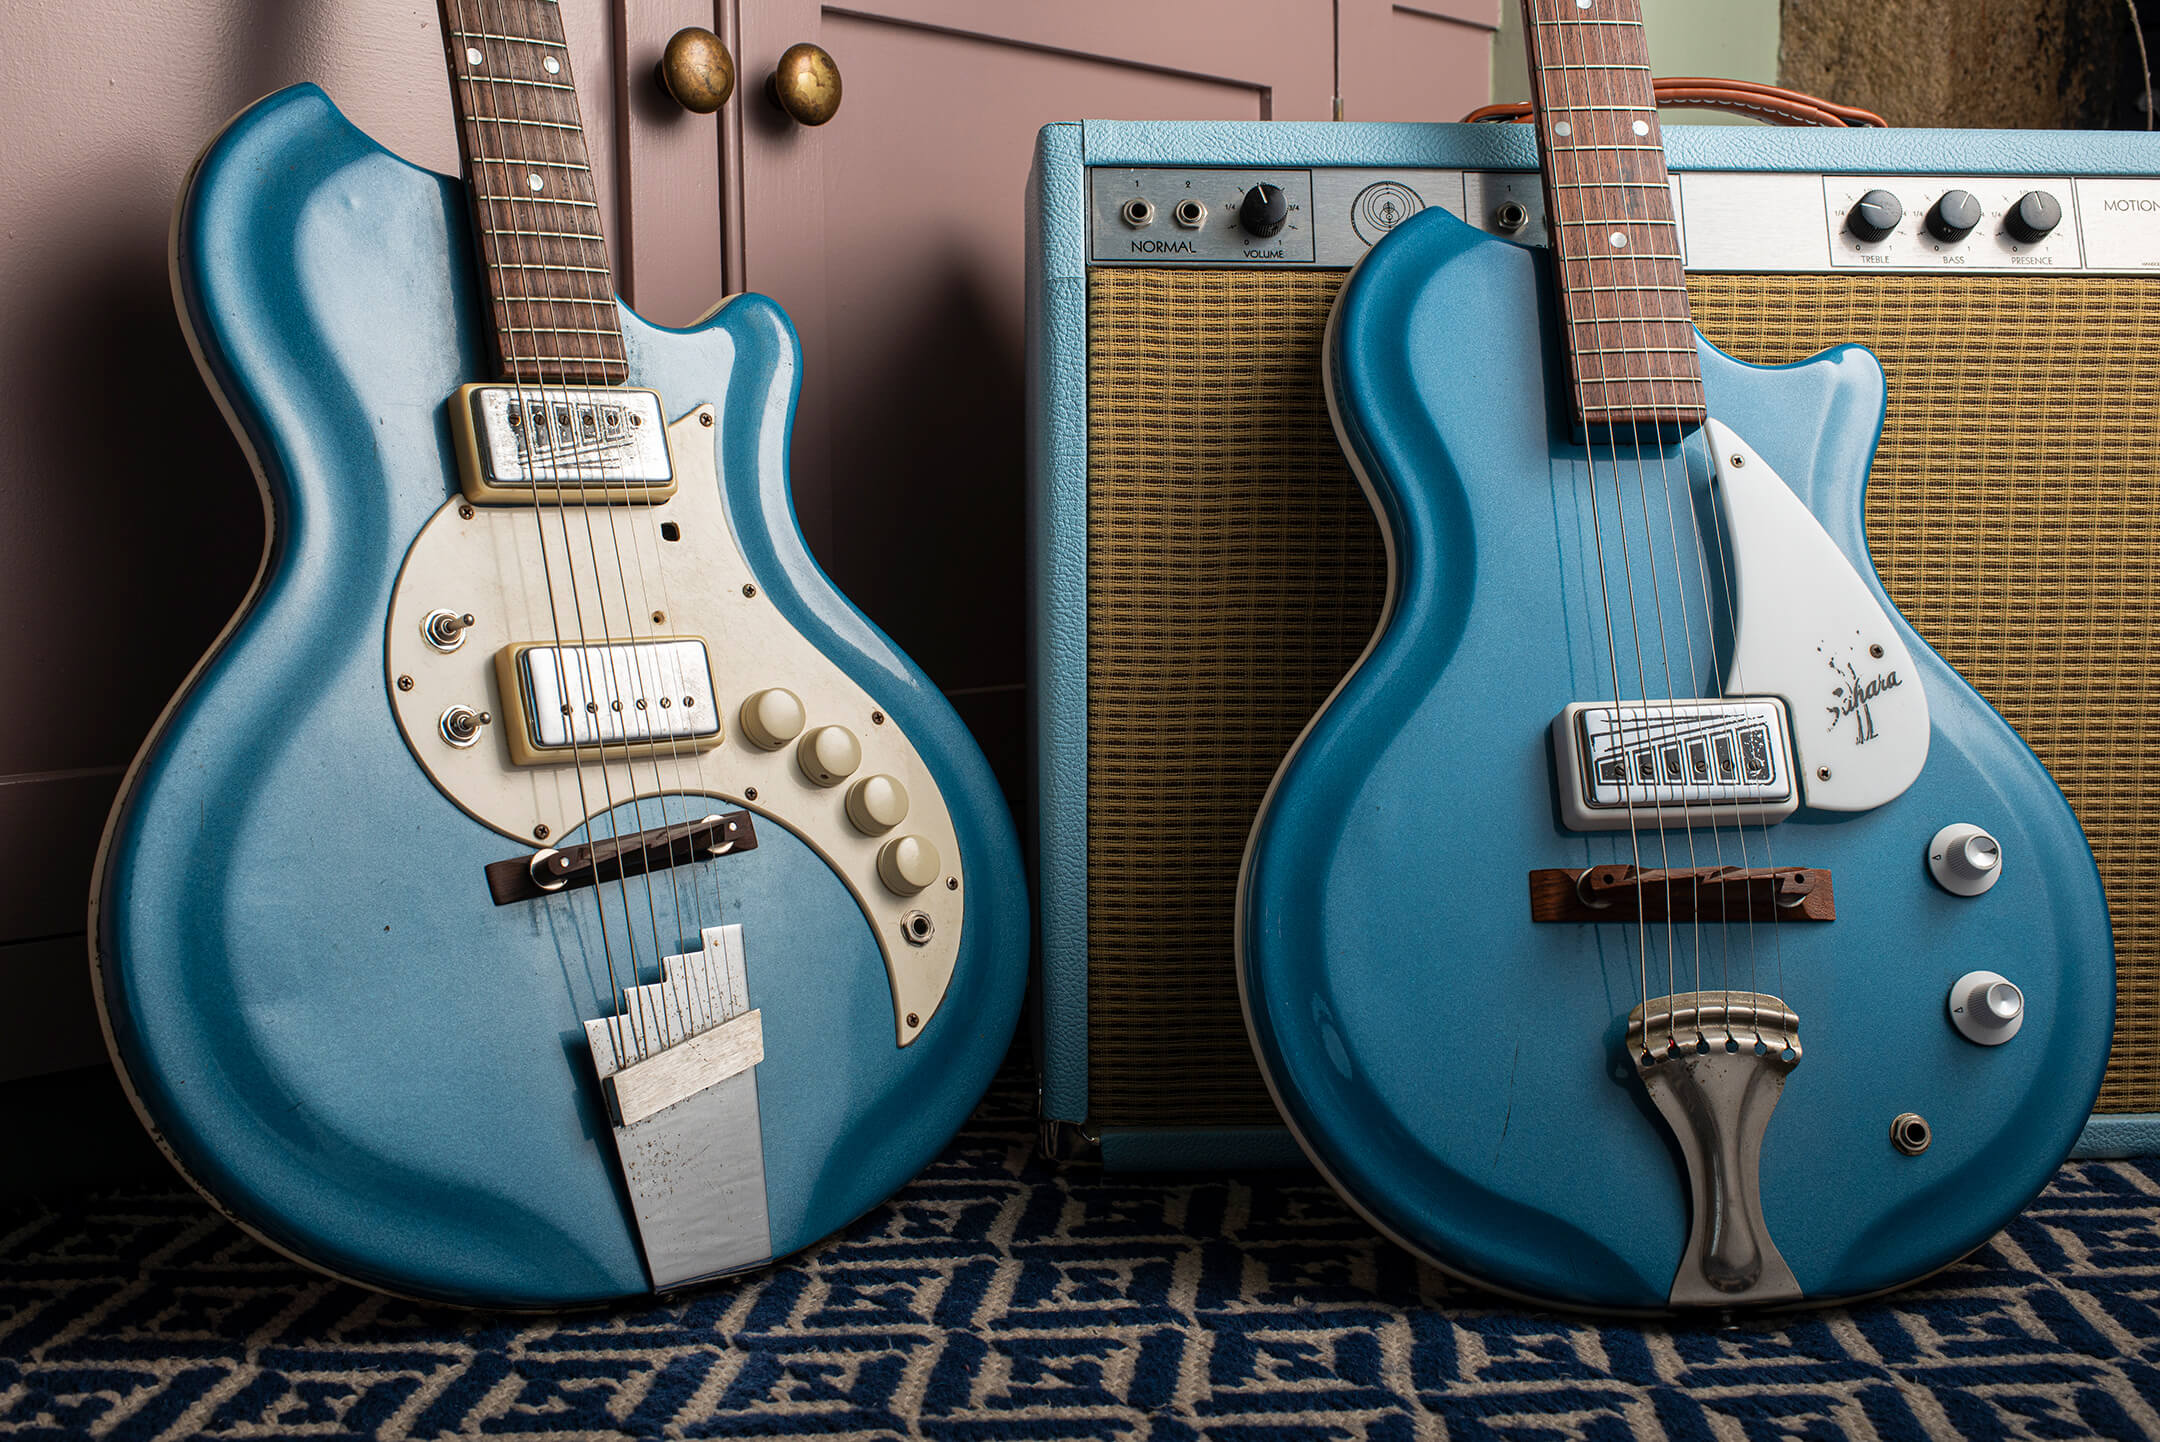 Marc Ransley's 1965 Supro Tremo-Lectric and Sahara